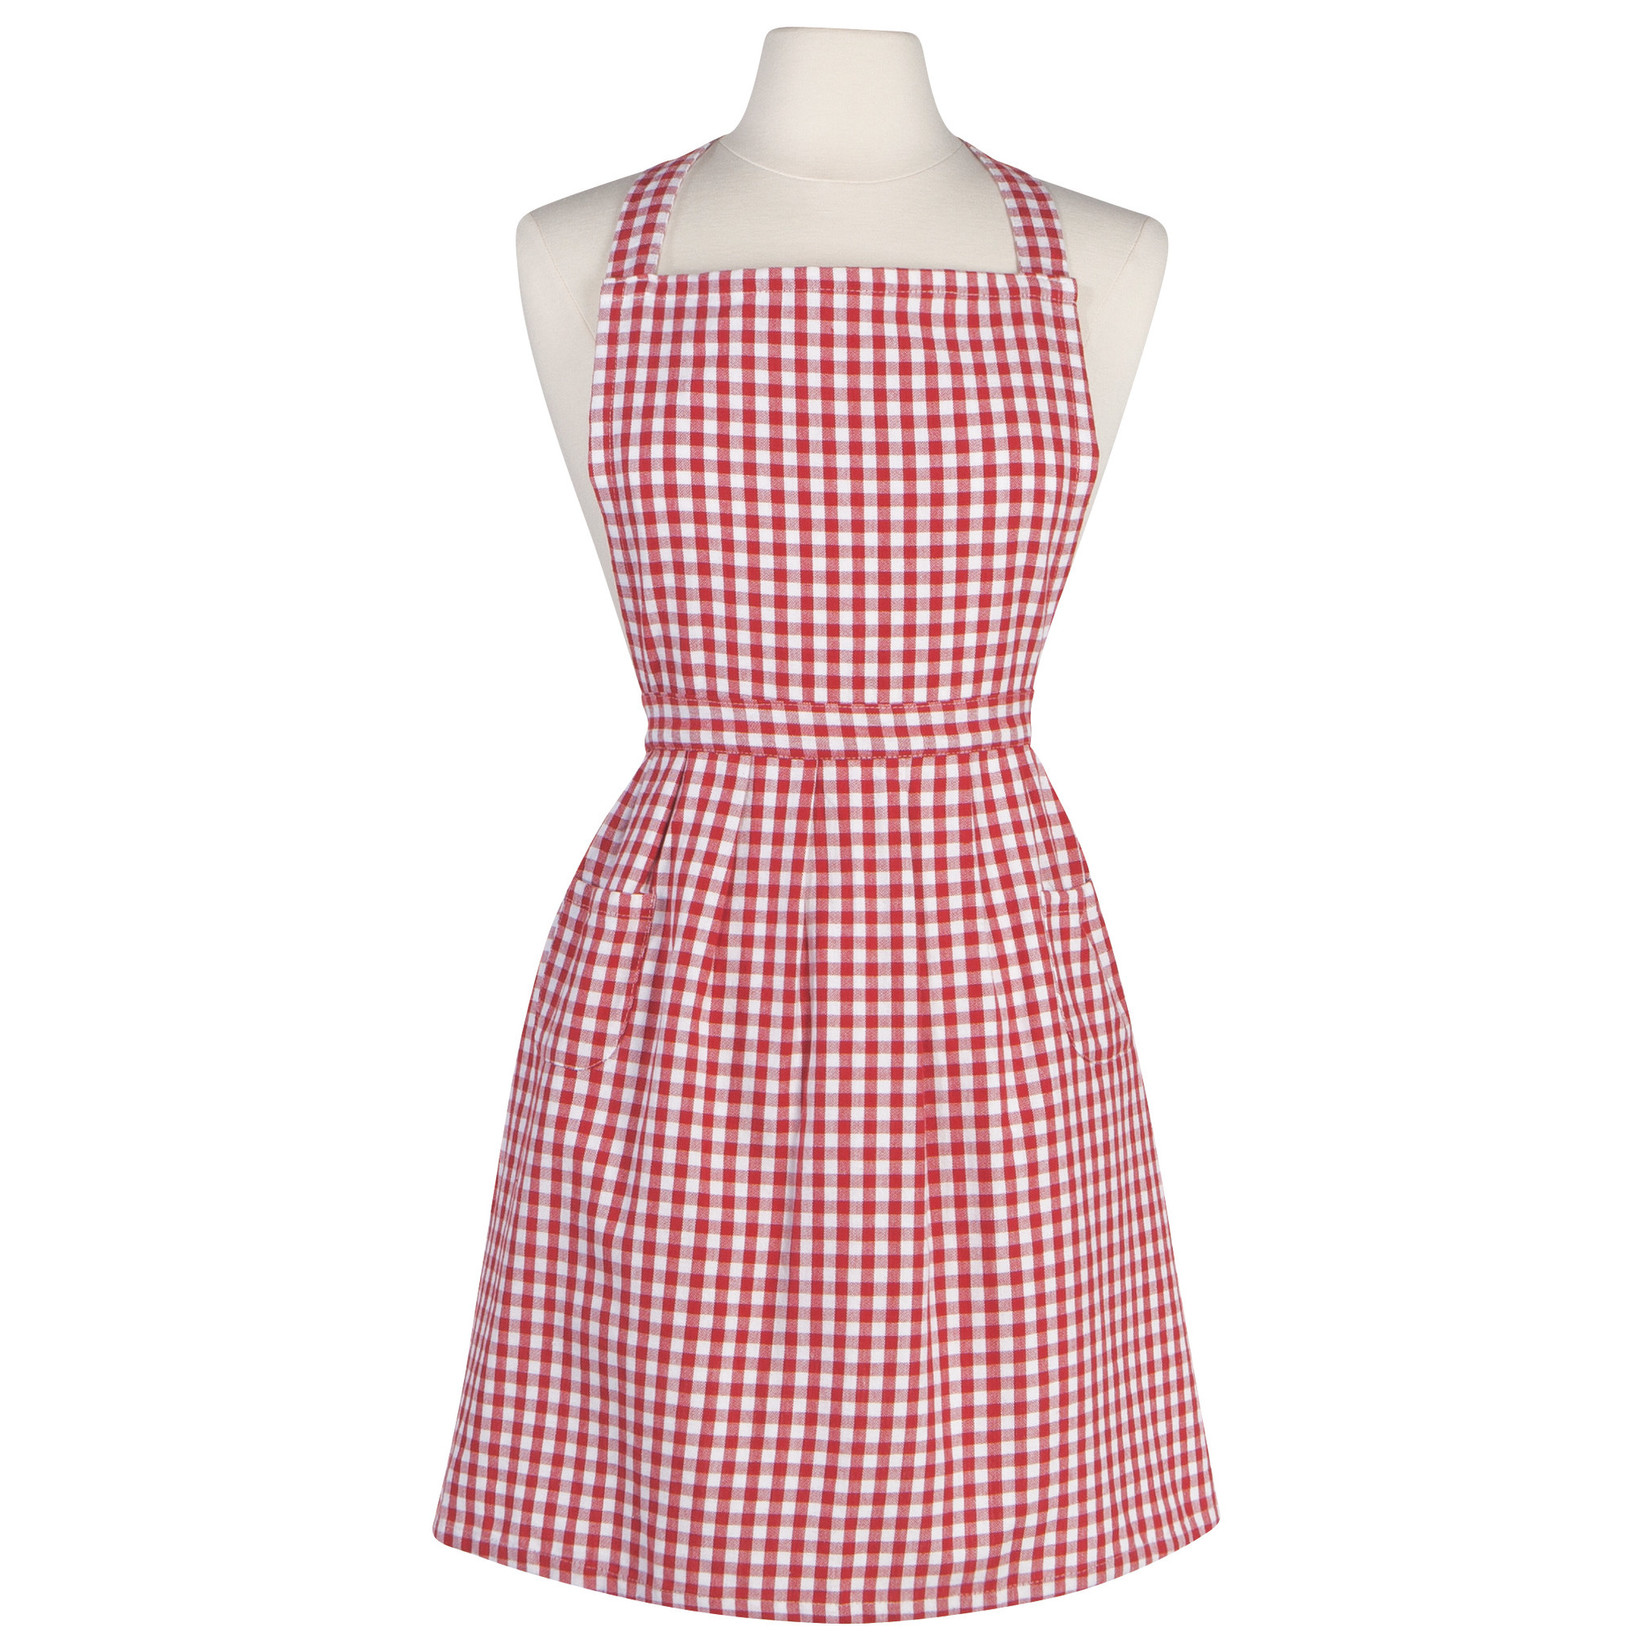 Classic Red Gingham - Apron